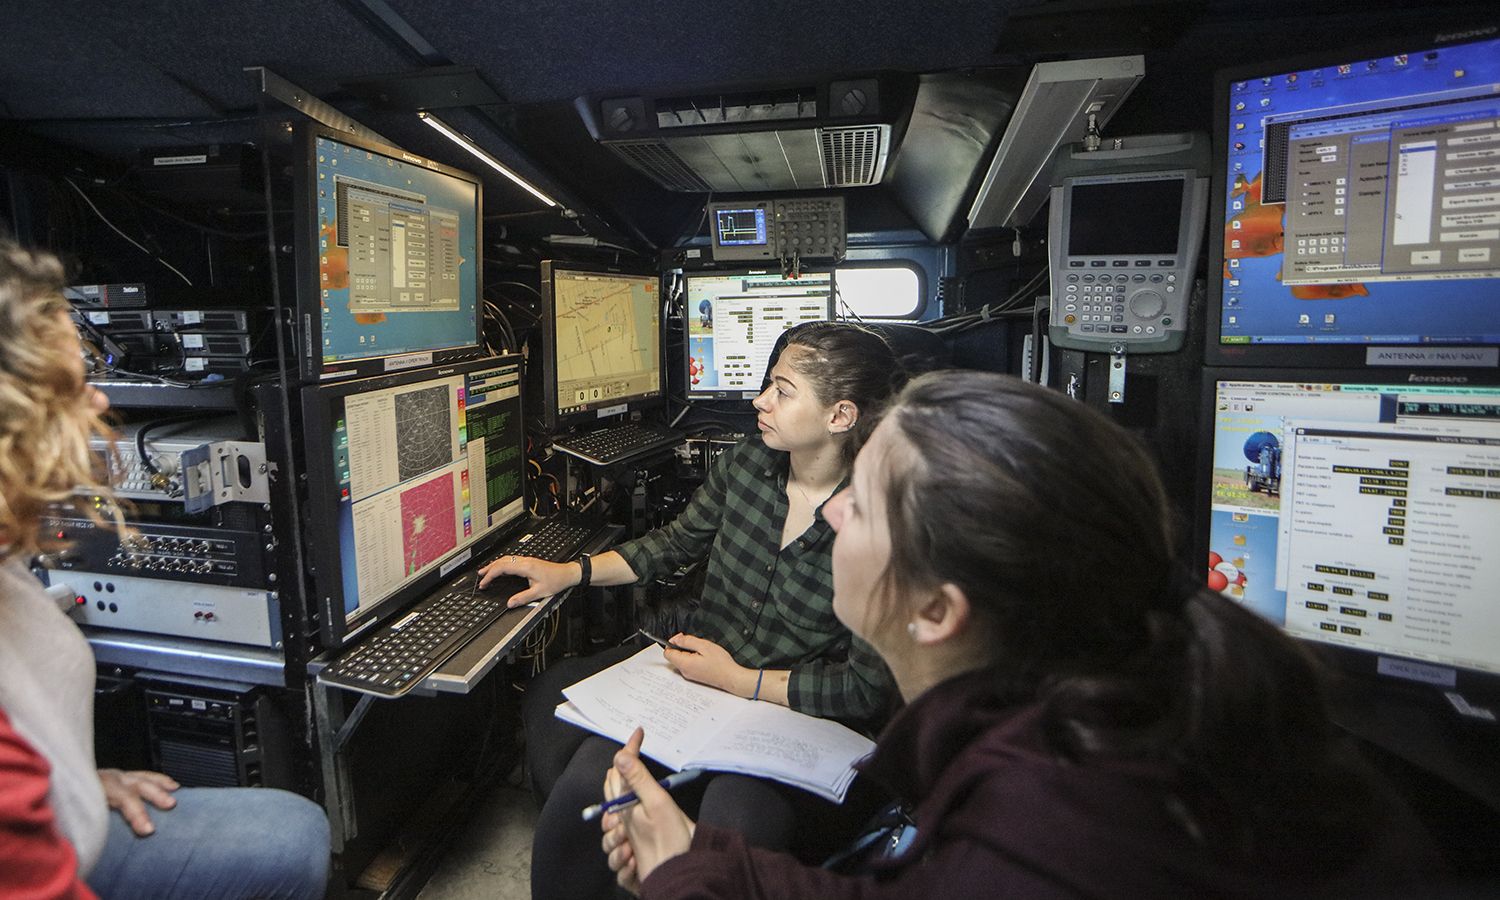 Radar meteorologist from the Center for Severe Weather Research, Alycia Gilliland (left) demonstrates how to use the Doppler-on-Wheels (DOW) mobile weather radar to Haley Okun '18 and Elizabeth McCabe '18. As part of a grant awarded by the National Science Foundation, the DOW will be in the region through April 17 for an extensive education and outreach program.